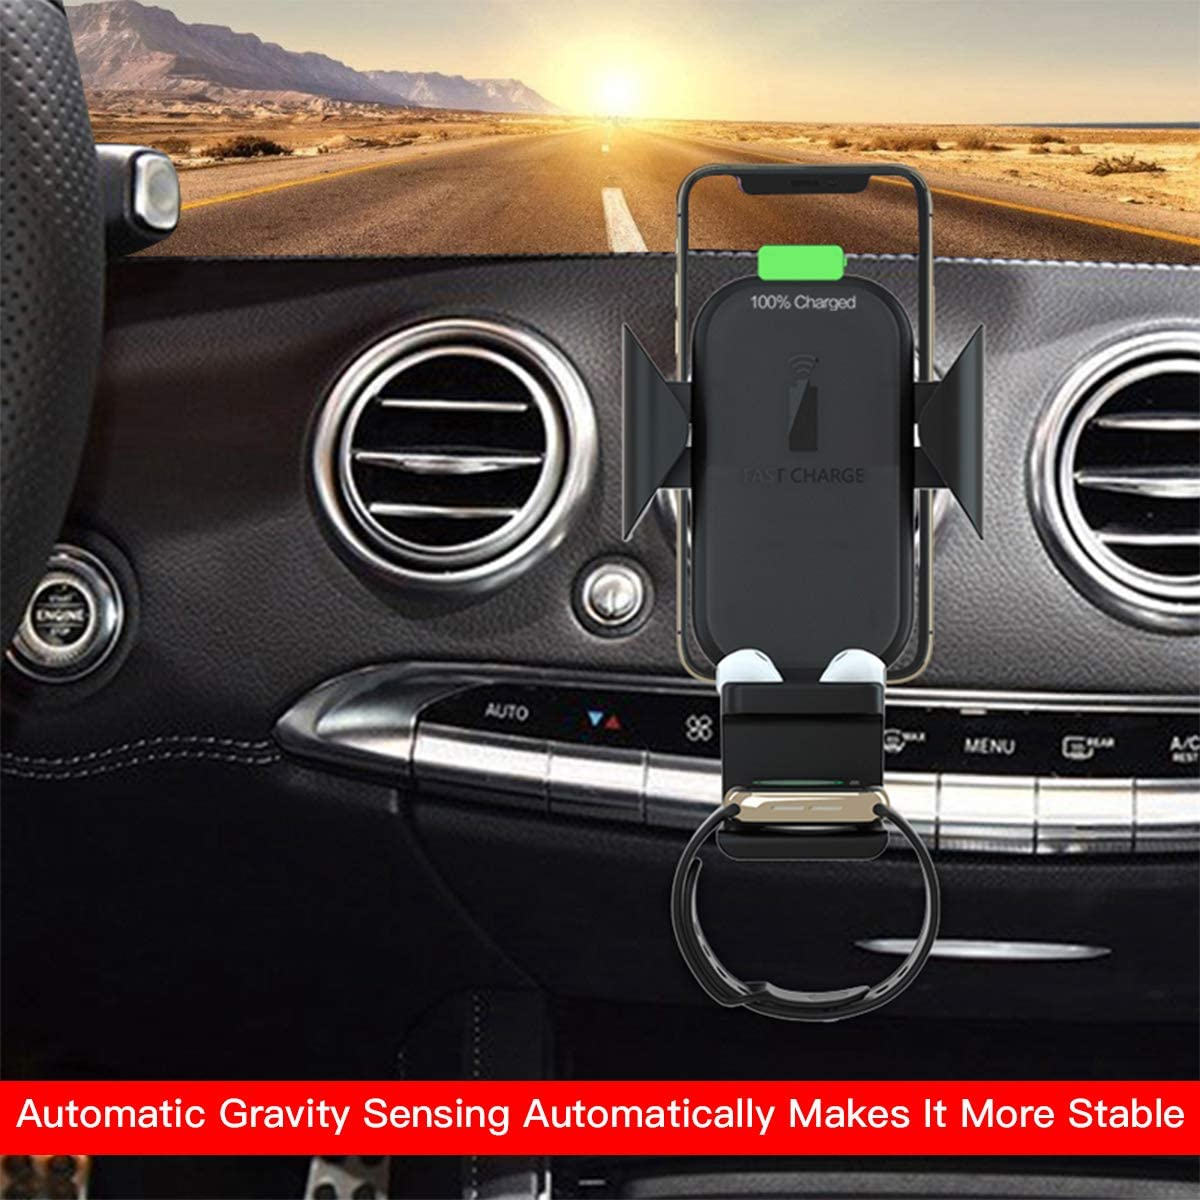 3 in 1 Qi Wireless Car Charger Air Vent Fast Wireless Charging Holder Car Phone Mount for Apple Watch//Airpods//iPhone 11 Pro Max//X//XR//XS Max and Samsung Galaxy S10//S10 Plus Note9//S9//S8//Note 10 Plus